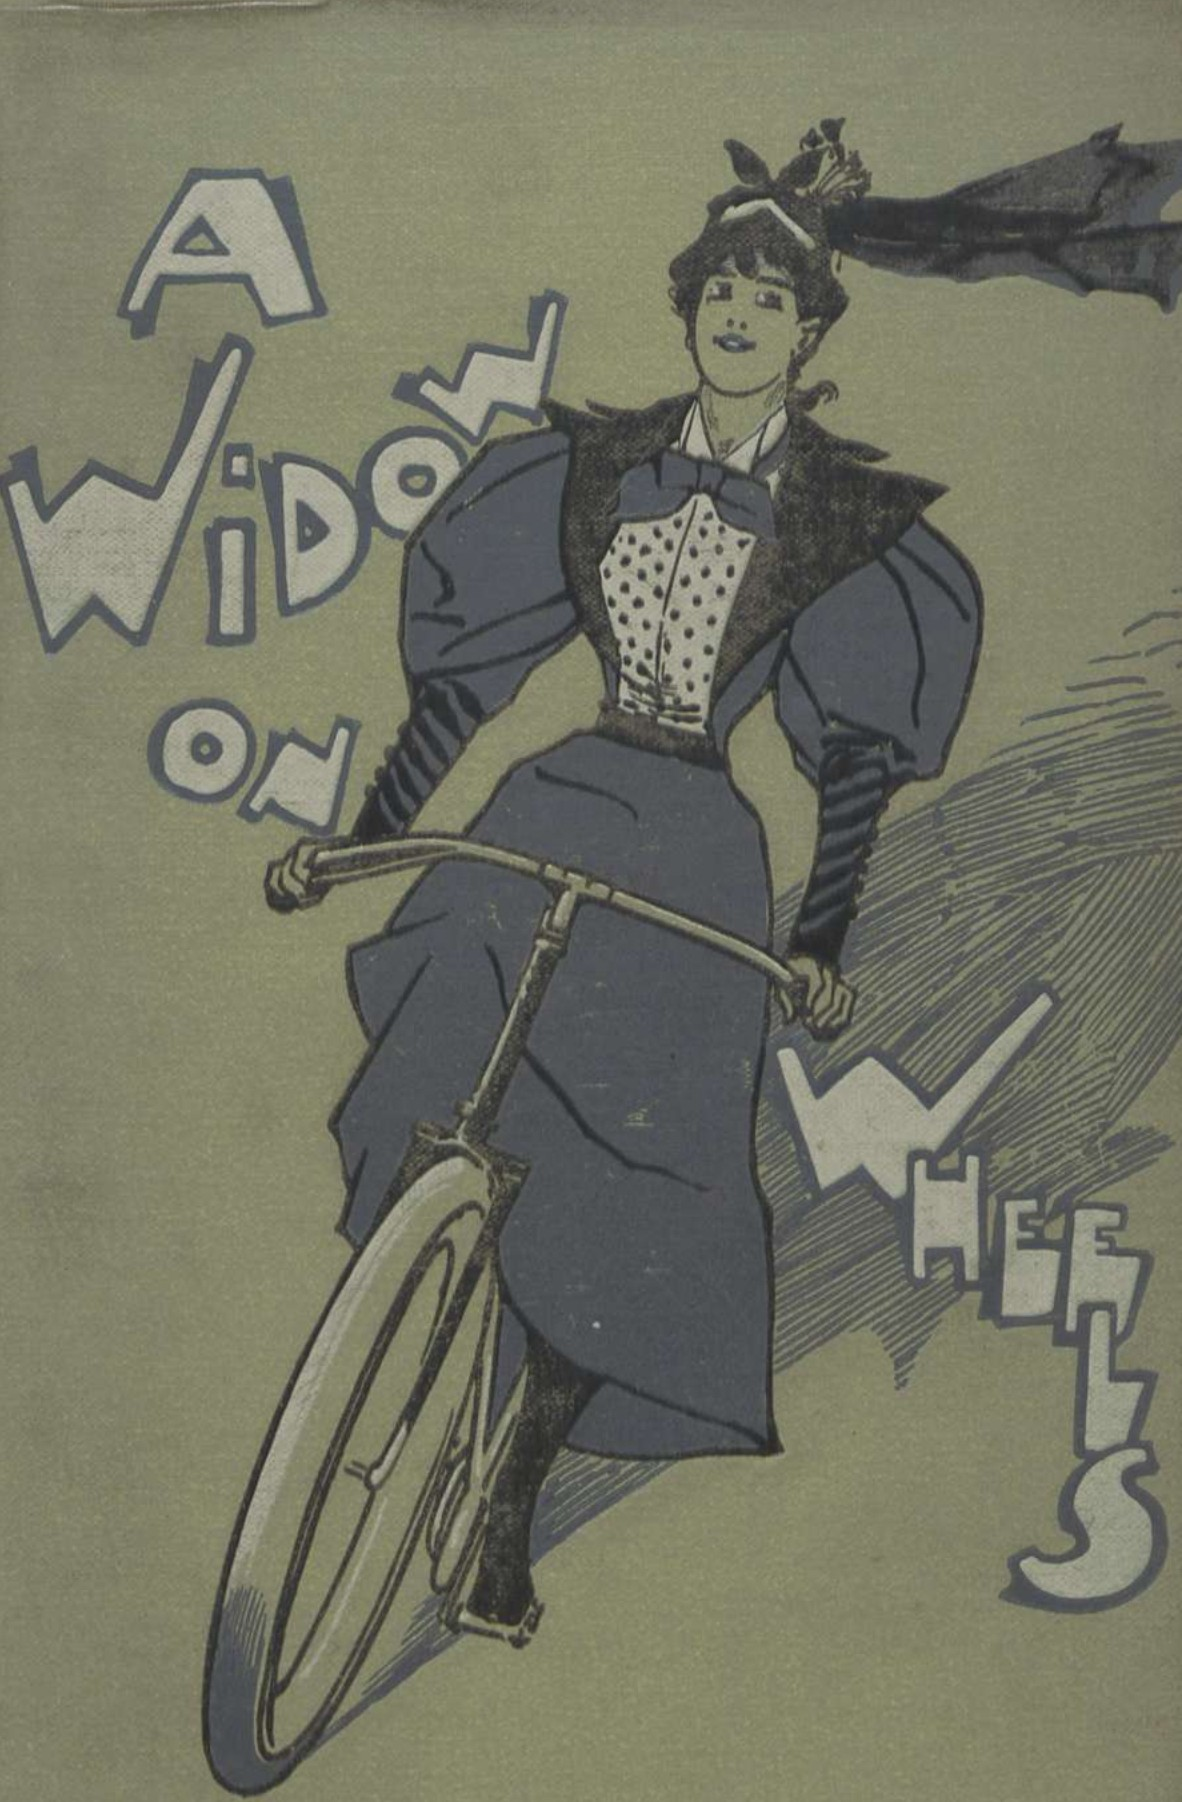 A Widow on Wheels